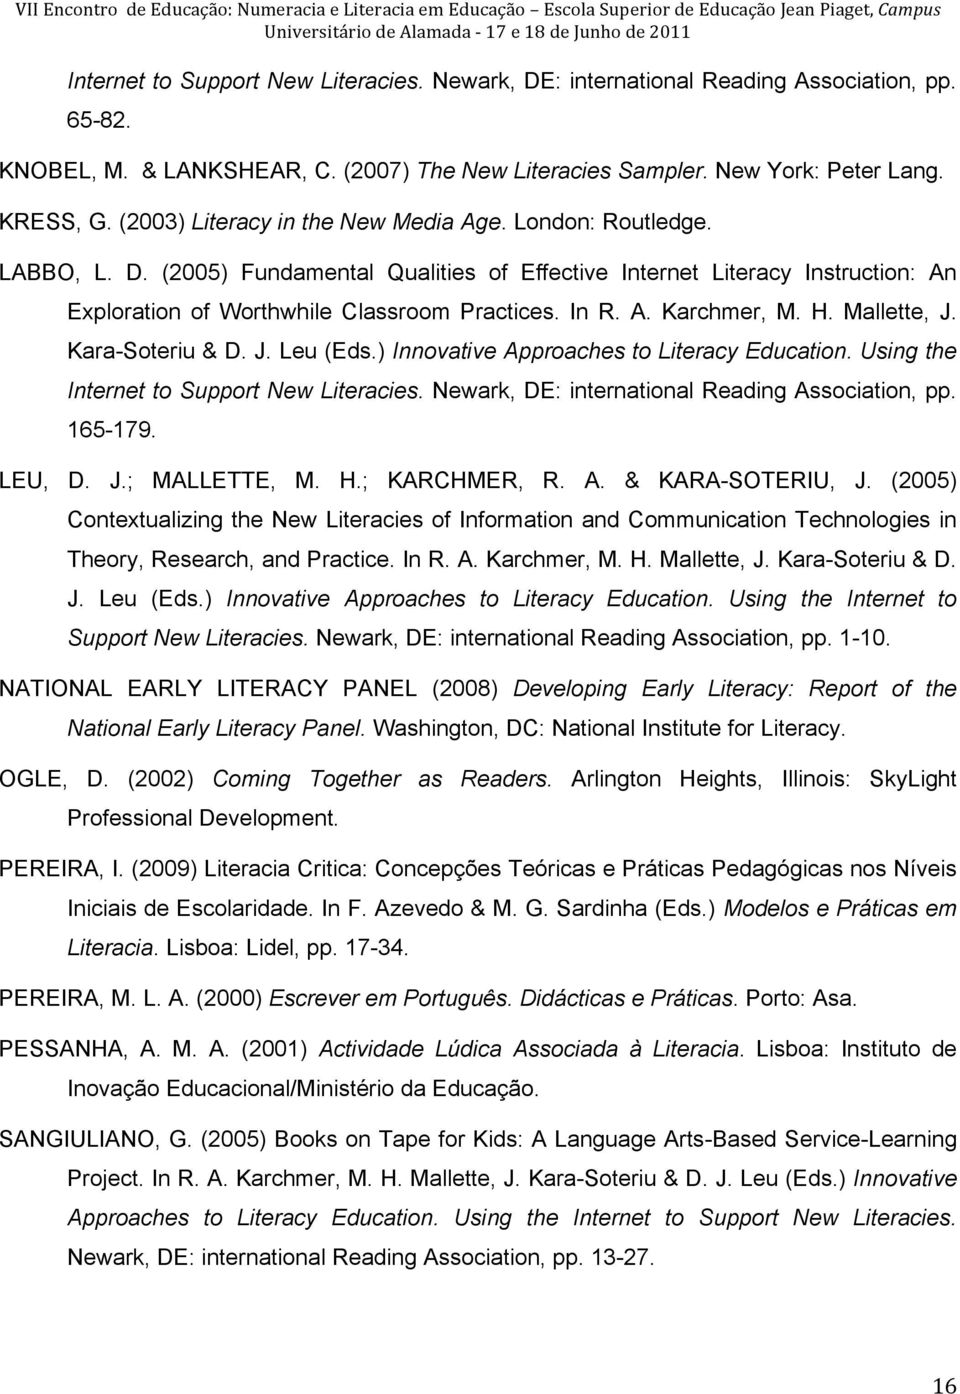 London: Routledge. LABBO, L. D. (2005) Fundamental Qualities of Effective Internet Literacy Instruction: An Exploration of Worthwhile Classroom Practices. In R. A. Karchmer, M. H. Mallette, J.